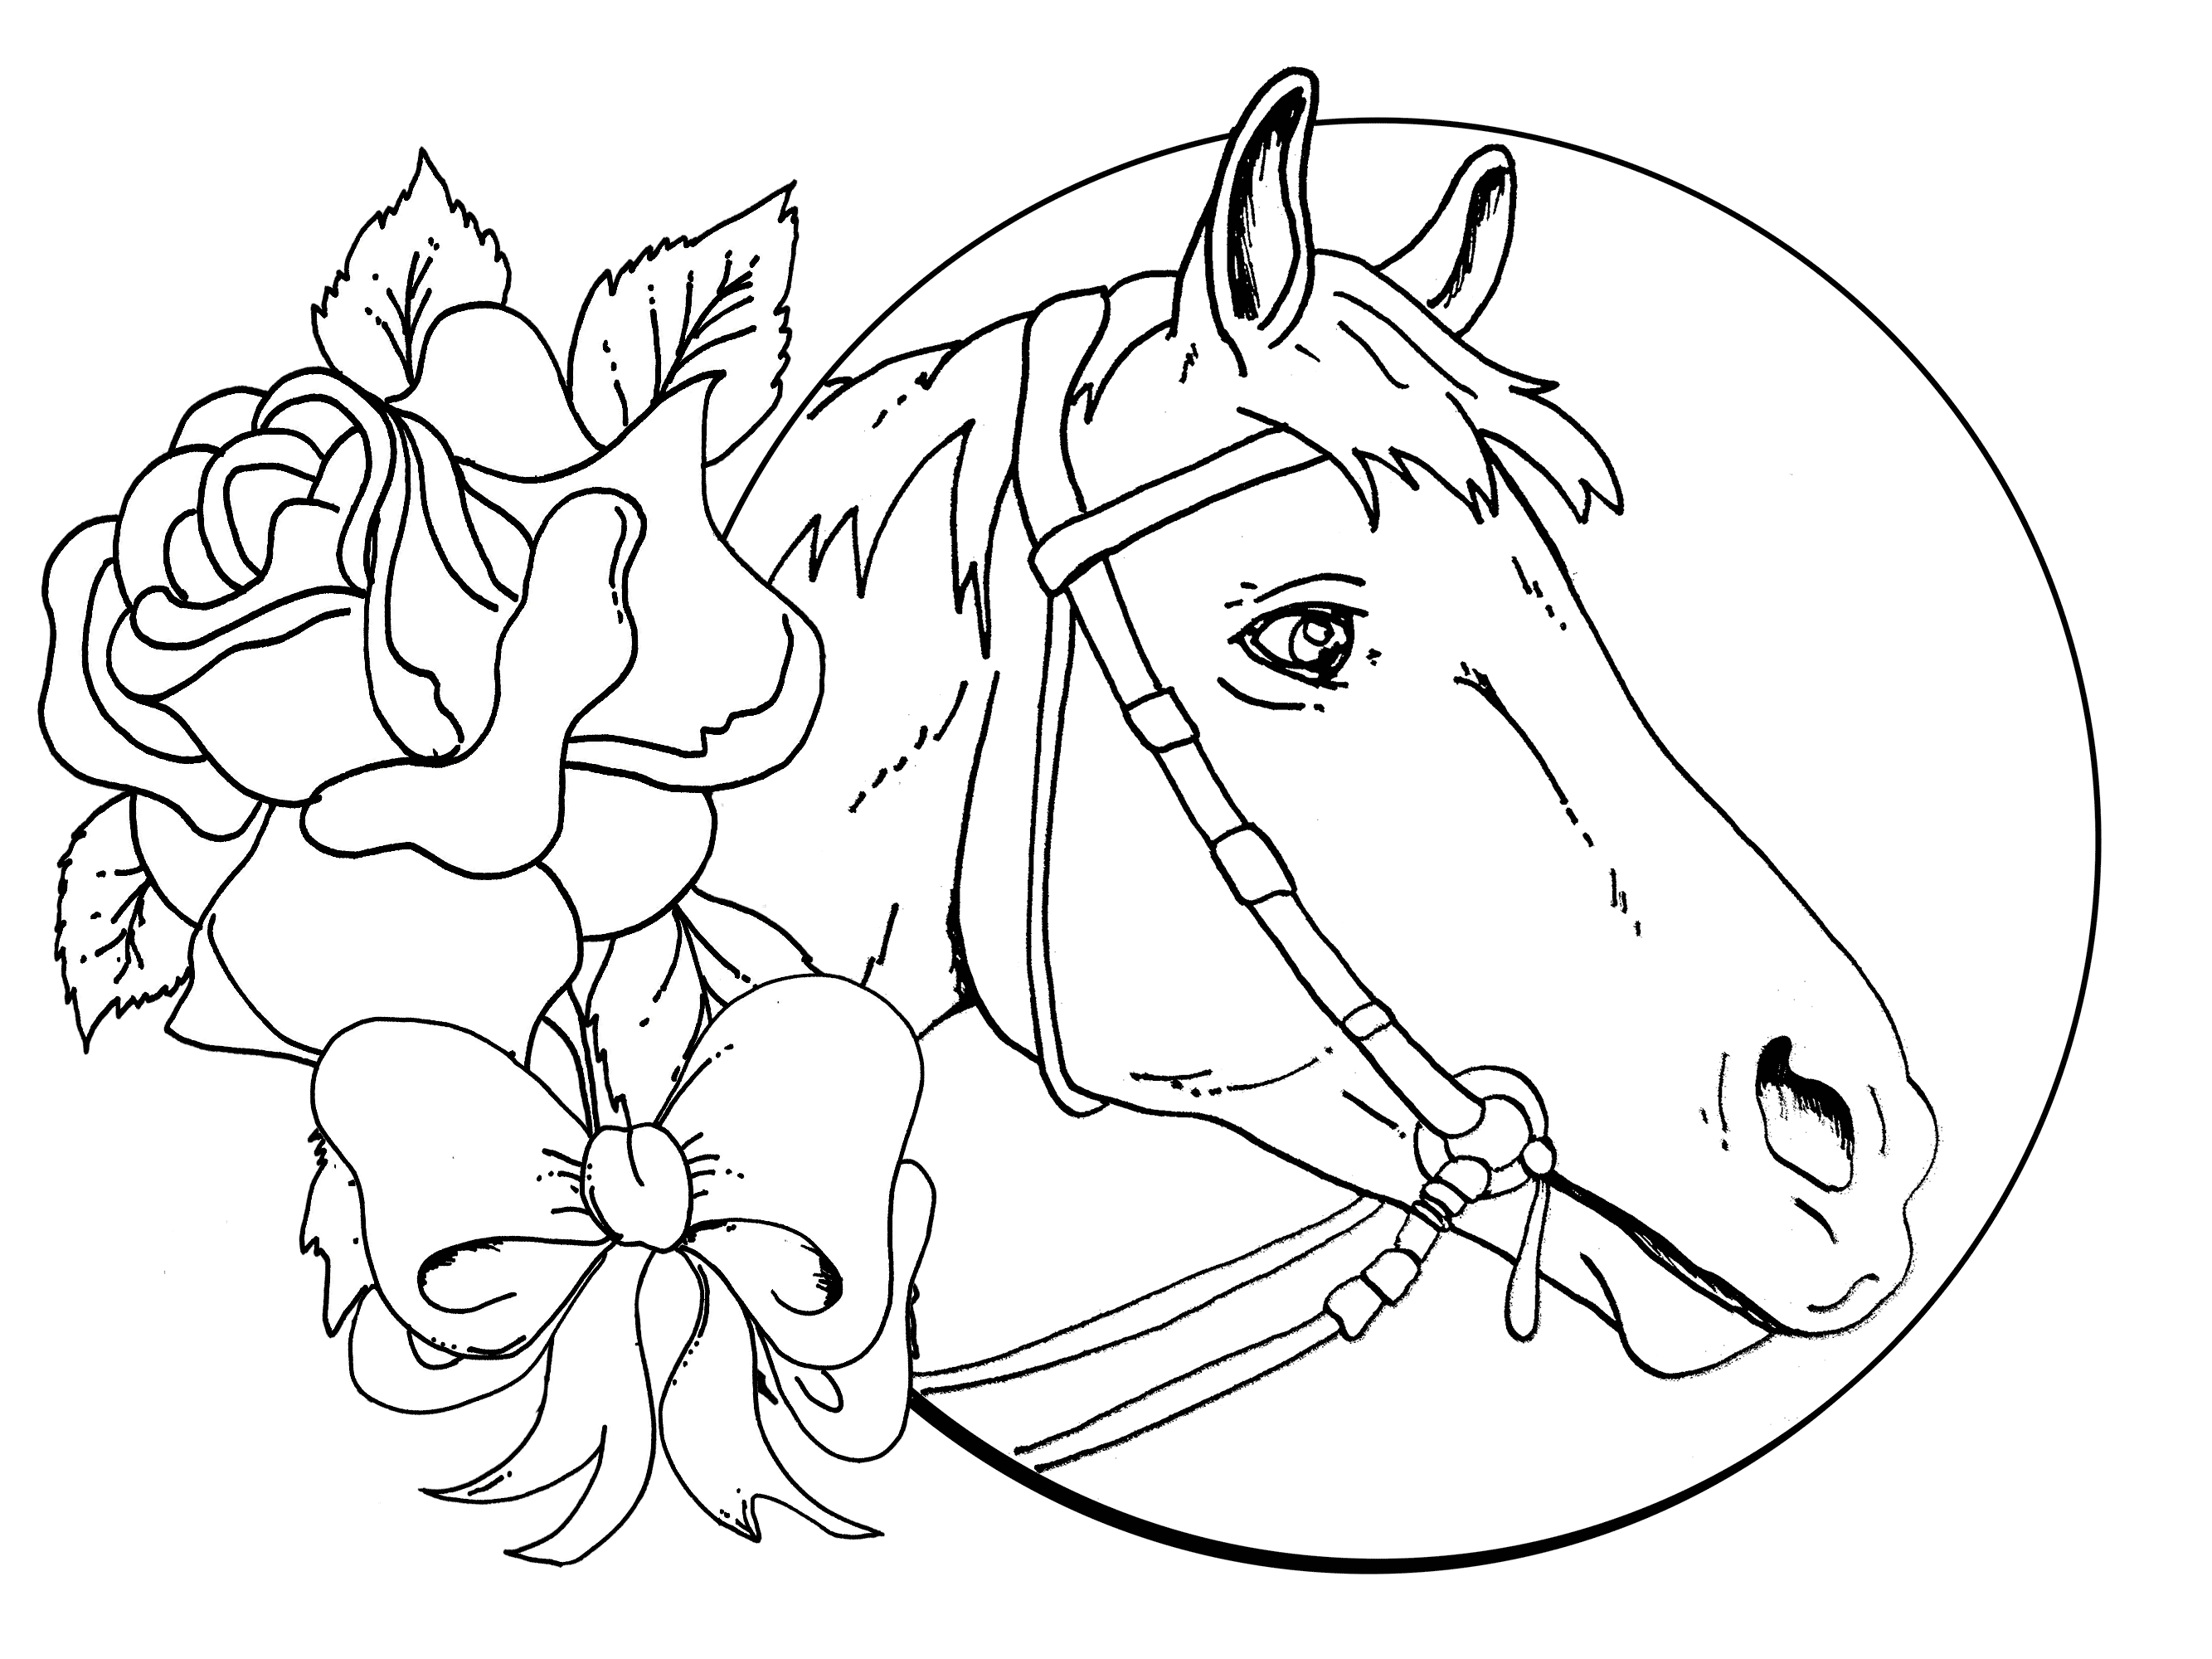 Free Coloring Pages For Girls at GetDrawings.com | Free for ...